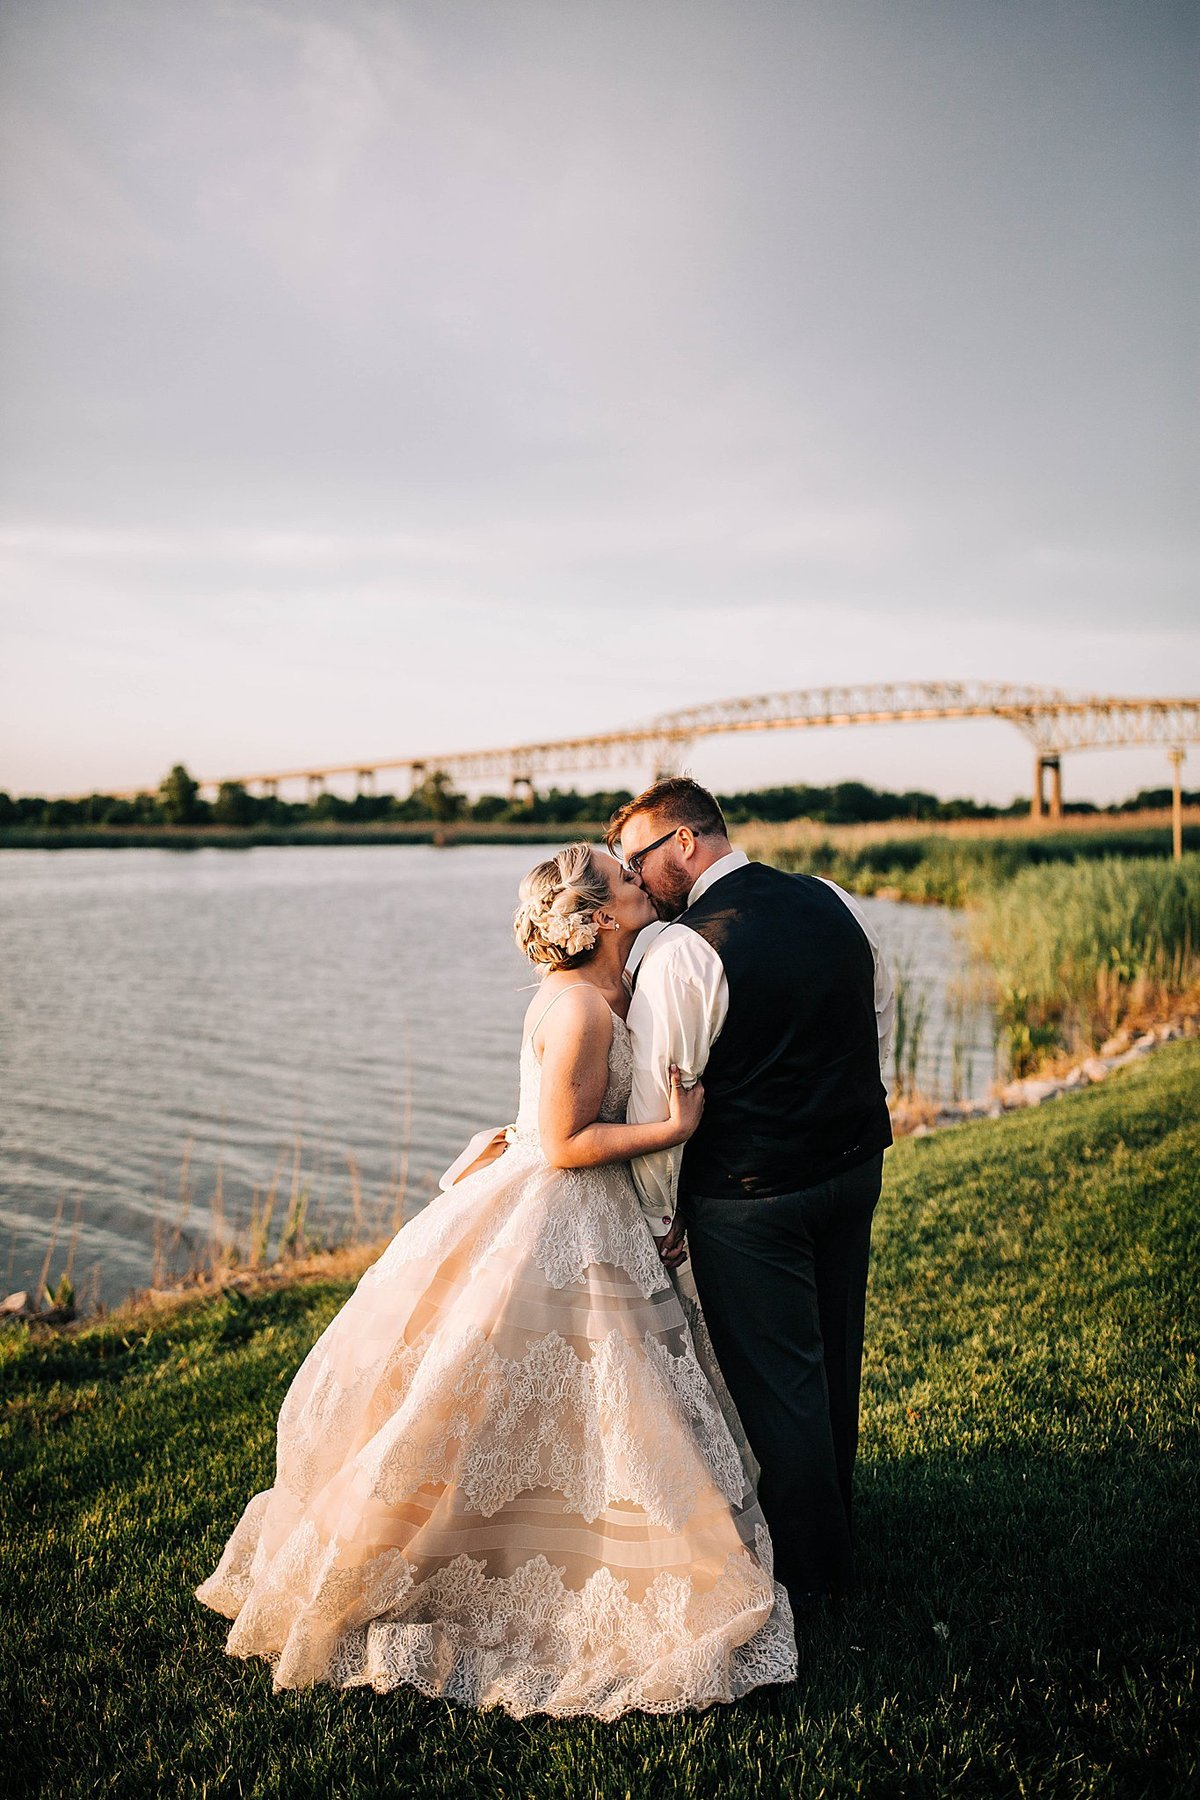 spring-wedding-thousand-acre-farm-delaware-rebecca-renner-photography_0113